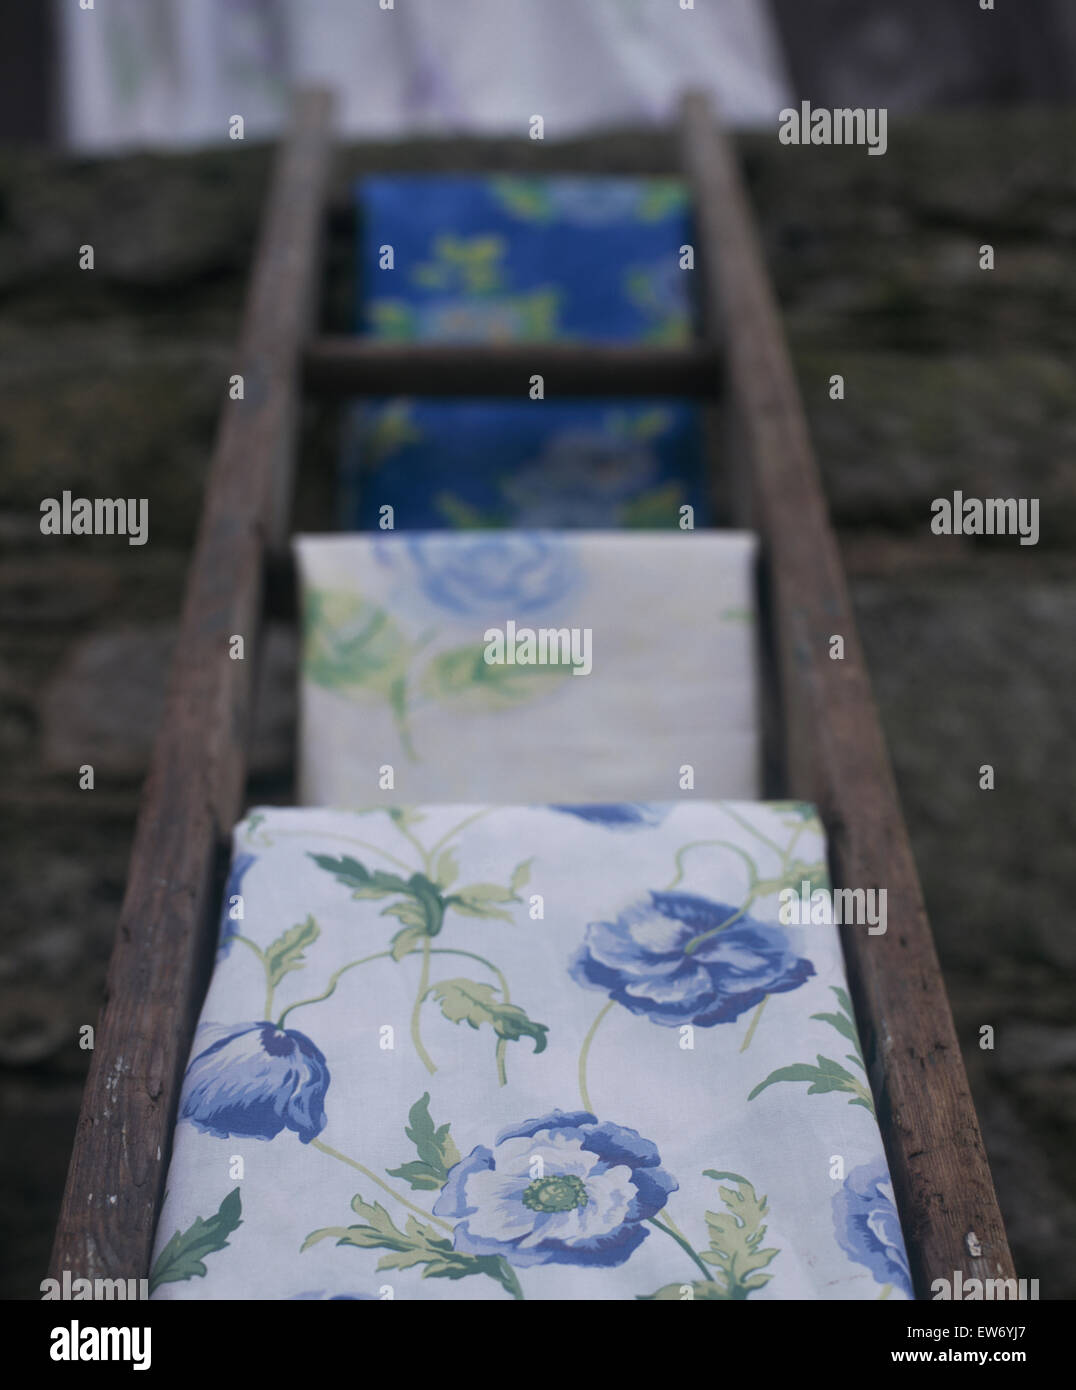 Close-up of blue poppy patterned bedlinen on a rustic wooden ladder - Stock Image